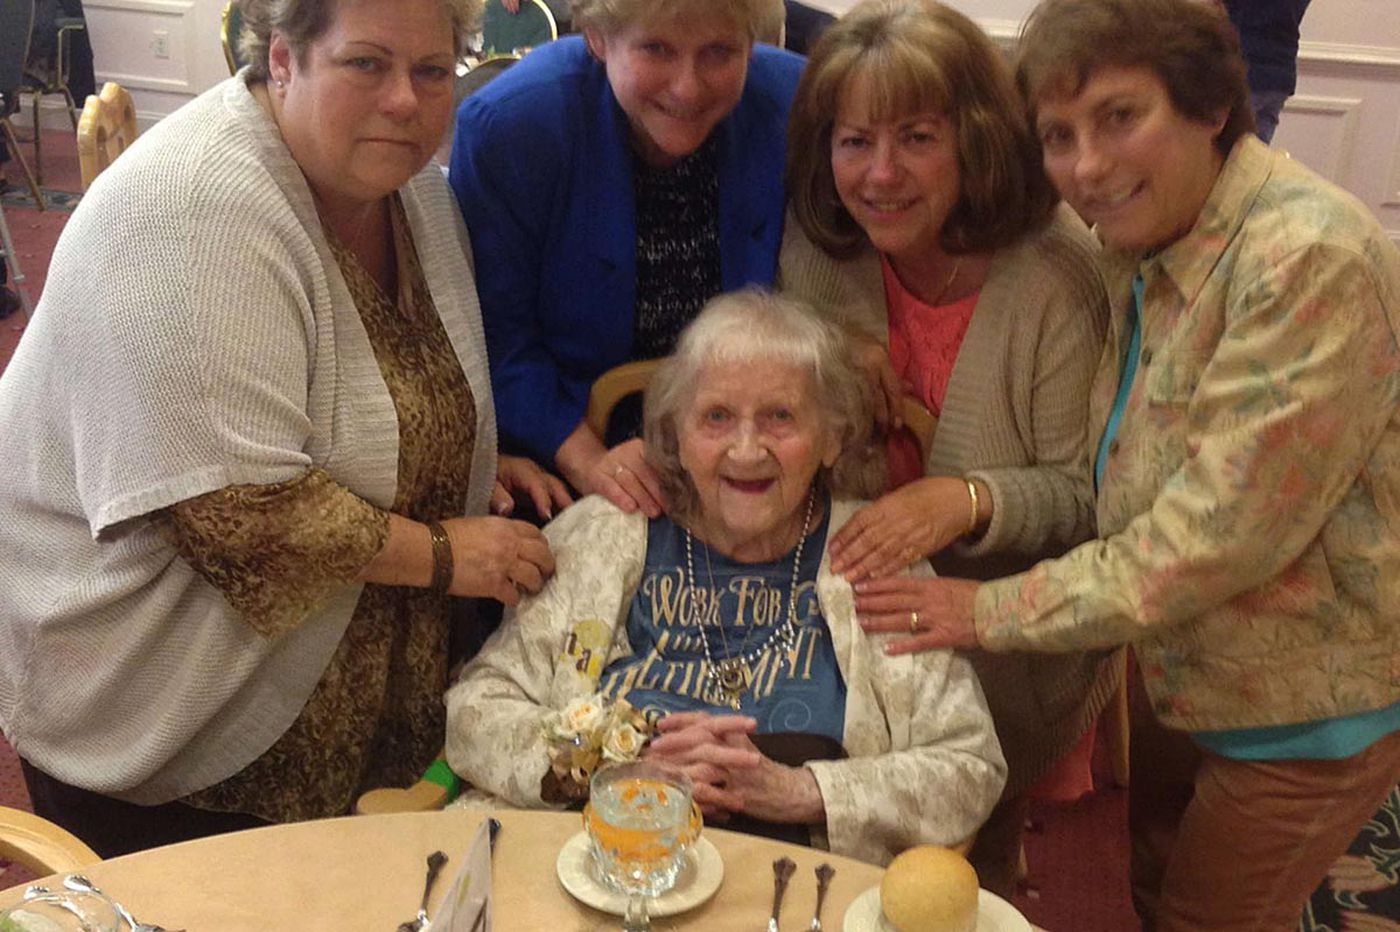 Centenarians say friends are key to growing old